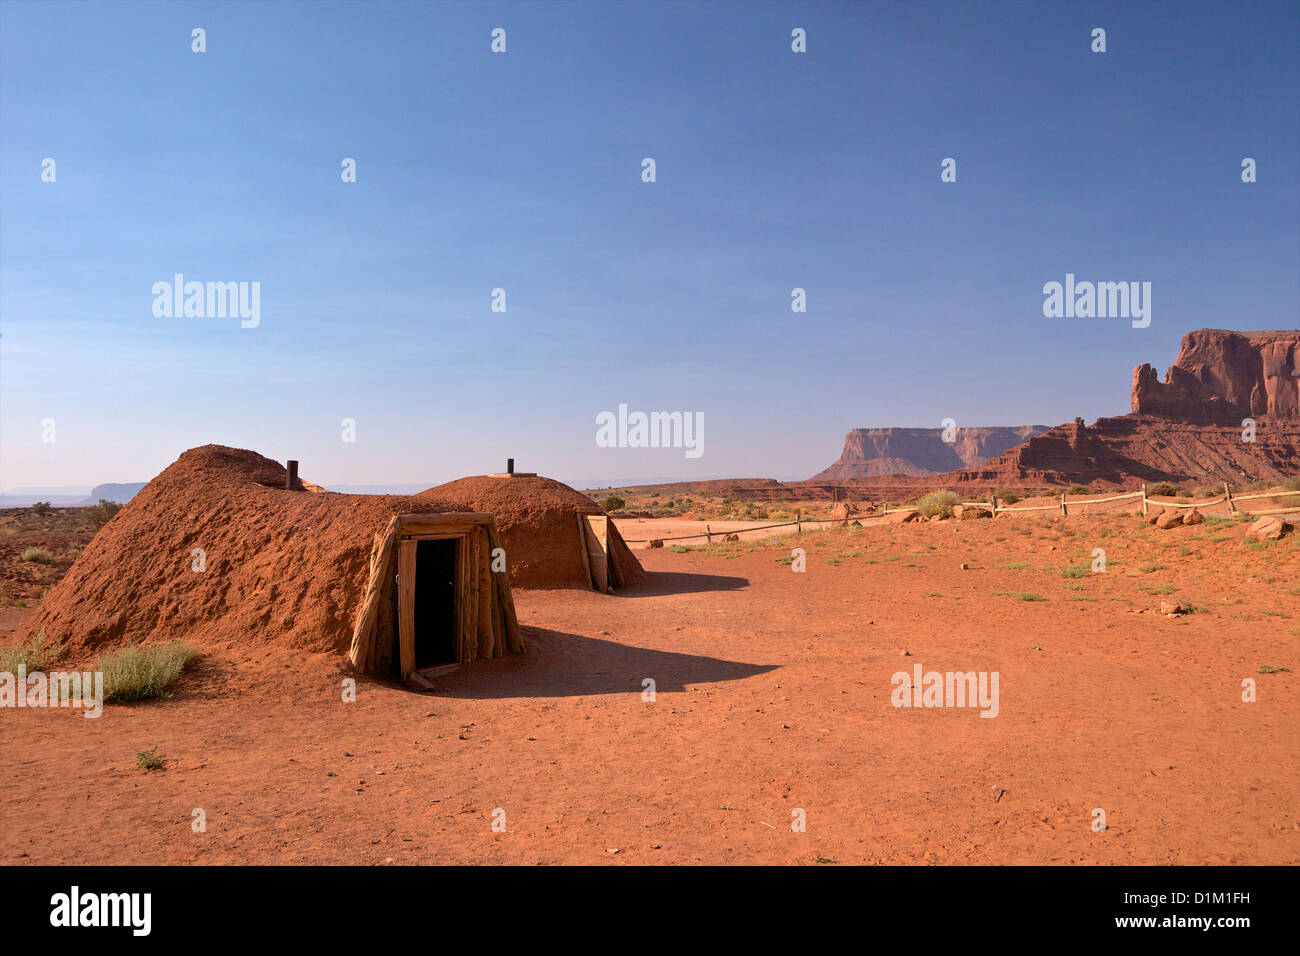 Habitation traditionnelle navajo hogans, rituelles et de structure, Monument Valley Navajo Tribal Park, Utah, USA Photo Stock